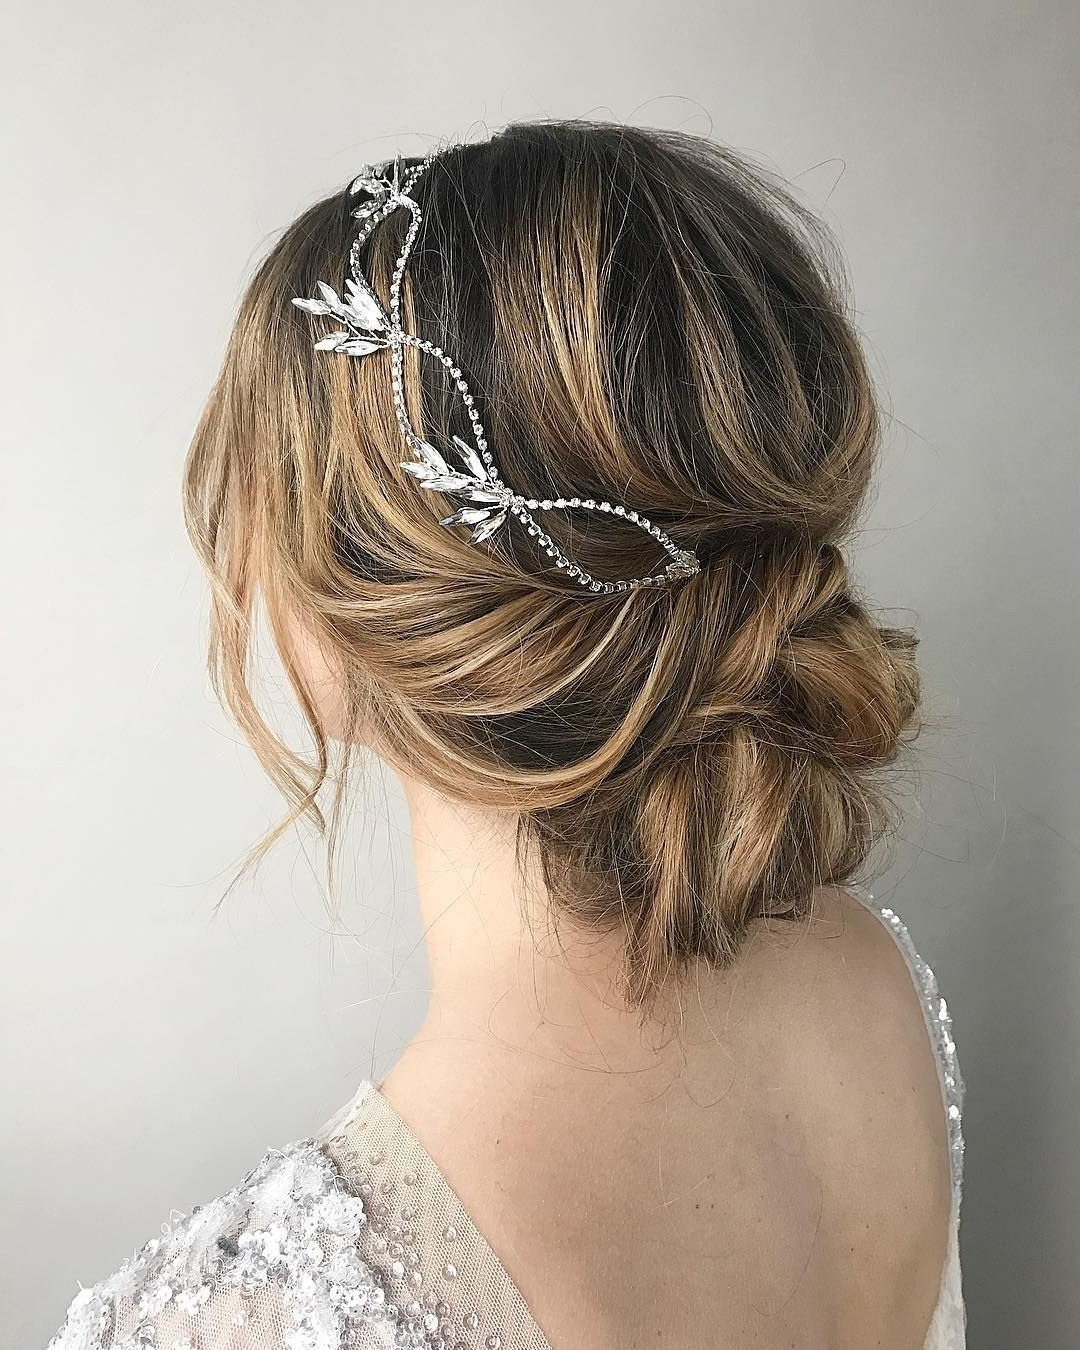 100 Gorgeous Wedding Hair From Ceremony To Reception | Messy Updo Throughout Messy Updo Hairstyles For Wedding (View 14 of 15)